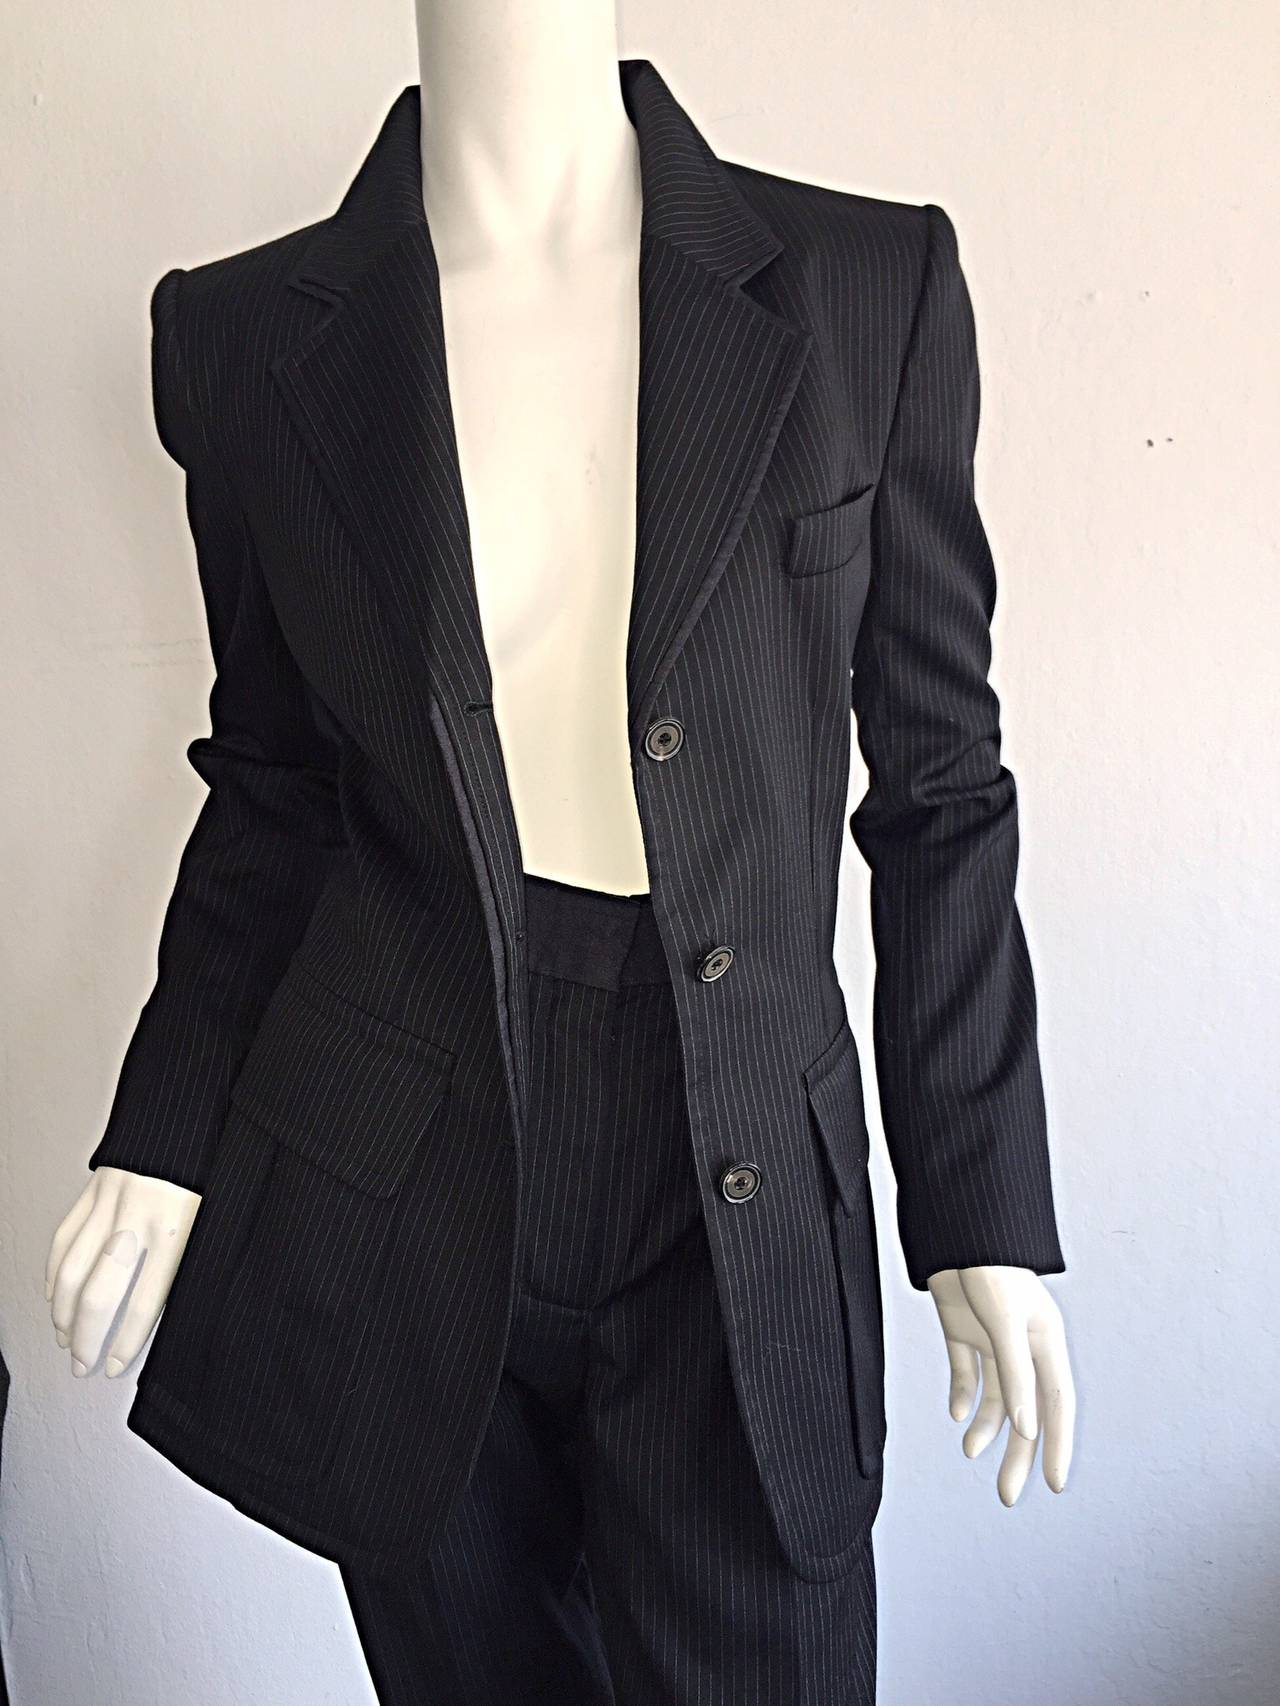 Women's Tom Ford for Yves Saint Laurent Black + White Pinstripe Le Smoking Trouser Suit For Sale